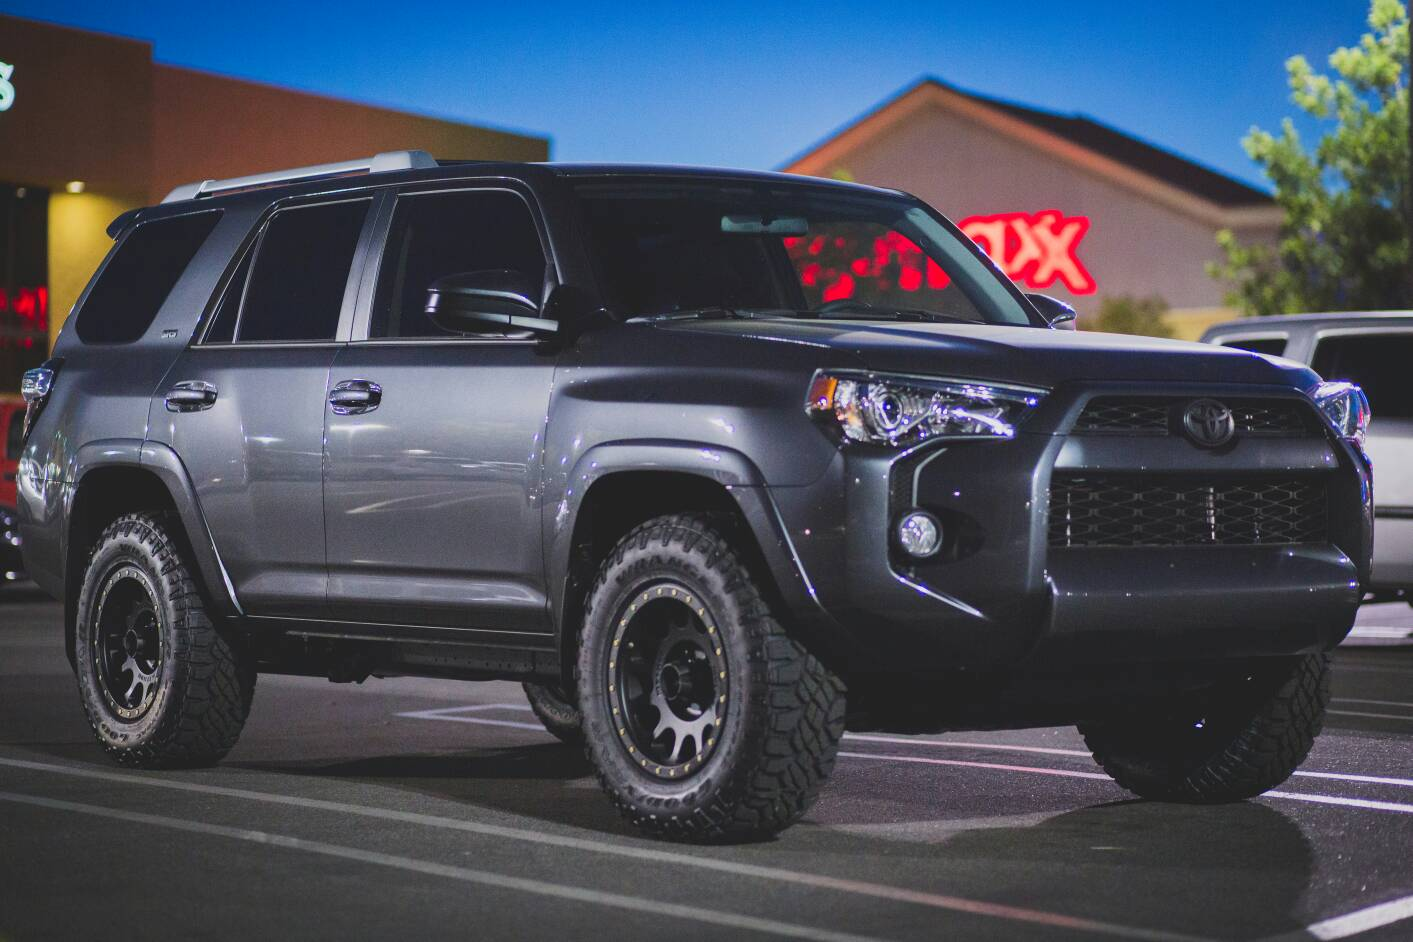 4runner grey magnetic 5th gen toyota 4runners lets them kuh cctt mistaken permalink others